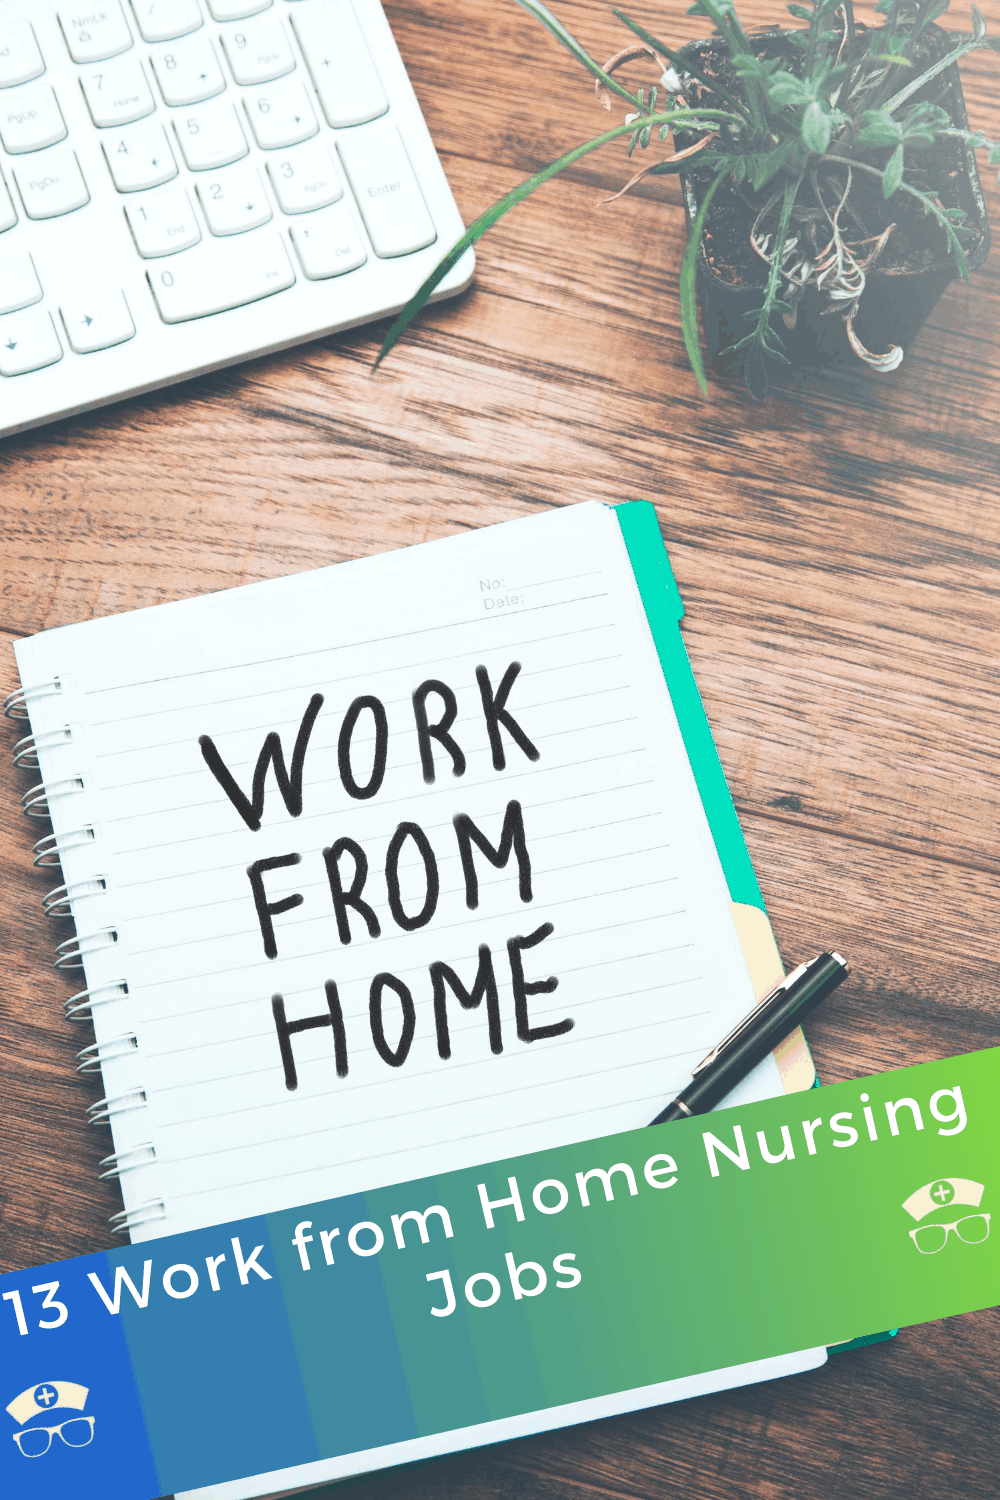 Working from home can really be a Godsend. Working from home is indeed an ideal situation. But is working from home possible in all professions, especially healthcare? To put it bluntly, are there ways a registered nurse can work from home? #thenerdynurse #nurse #nurses #workfromhome #nursejobs